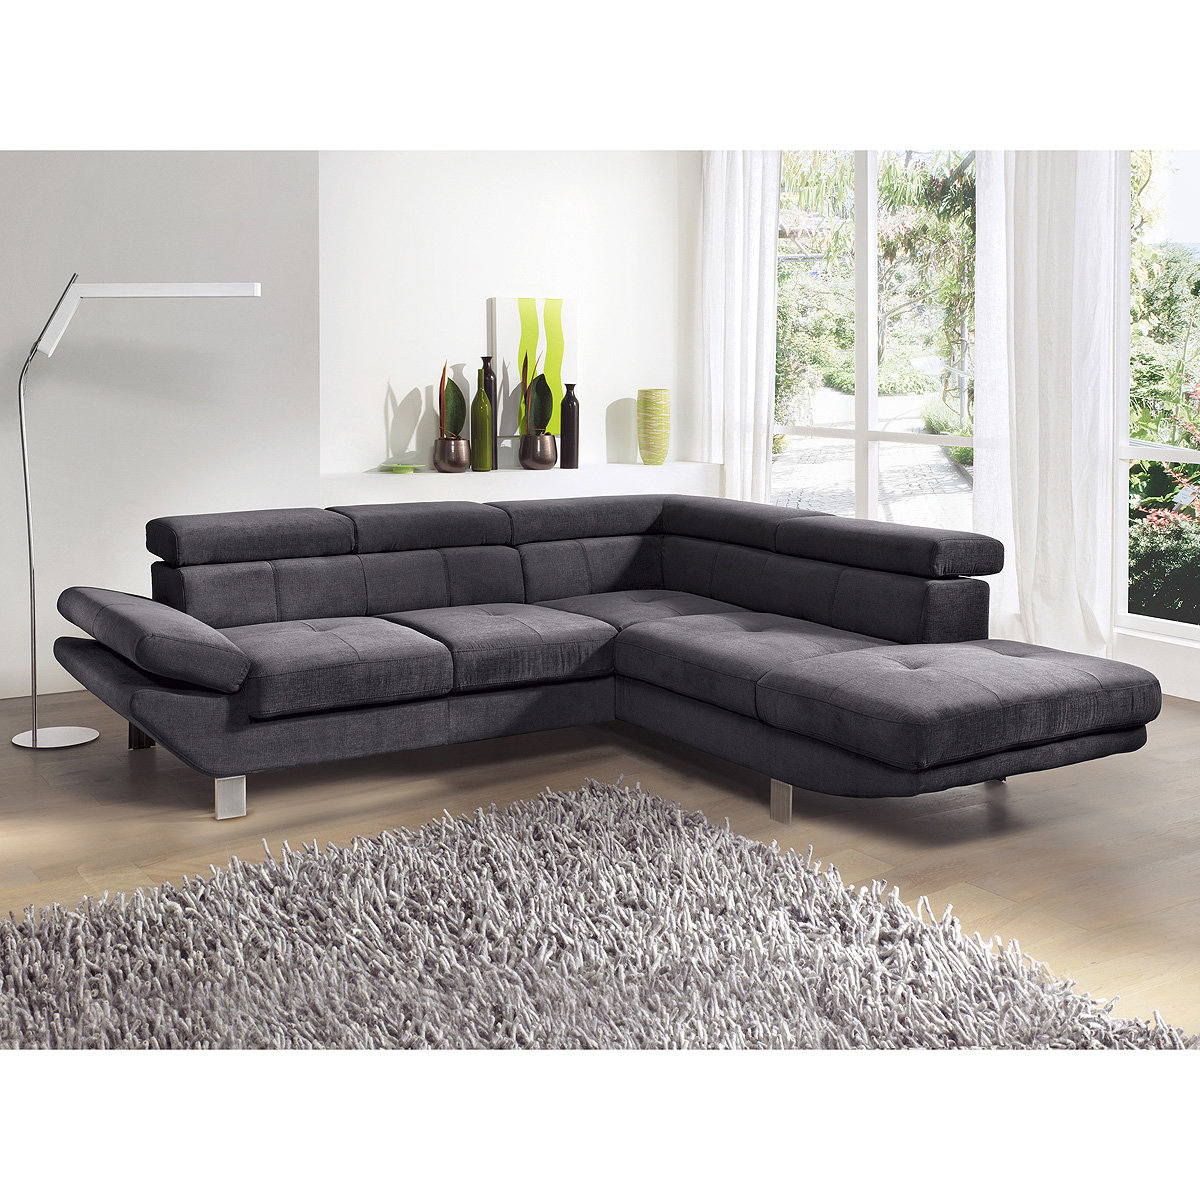 ecksofa carrier wohnlandschaft sofa polsterecke wei. Black Bedroom Furniture Sets. Home Design Ideas